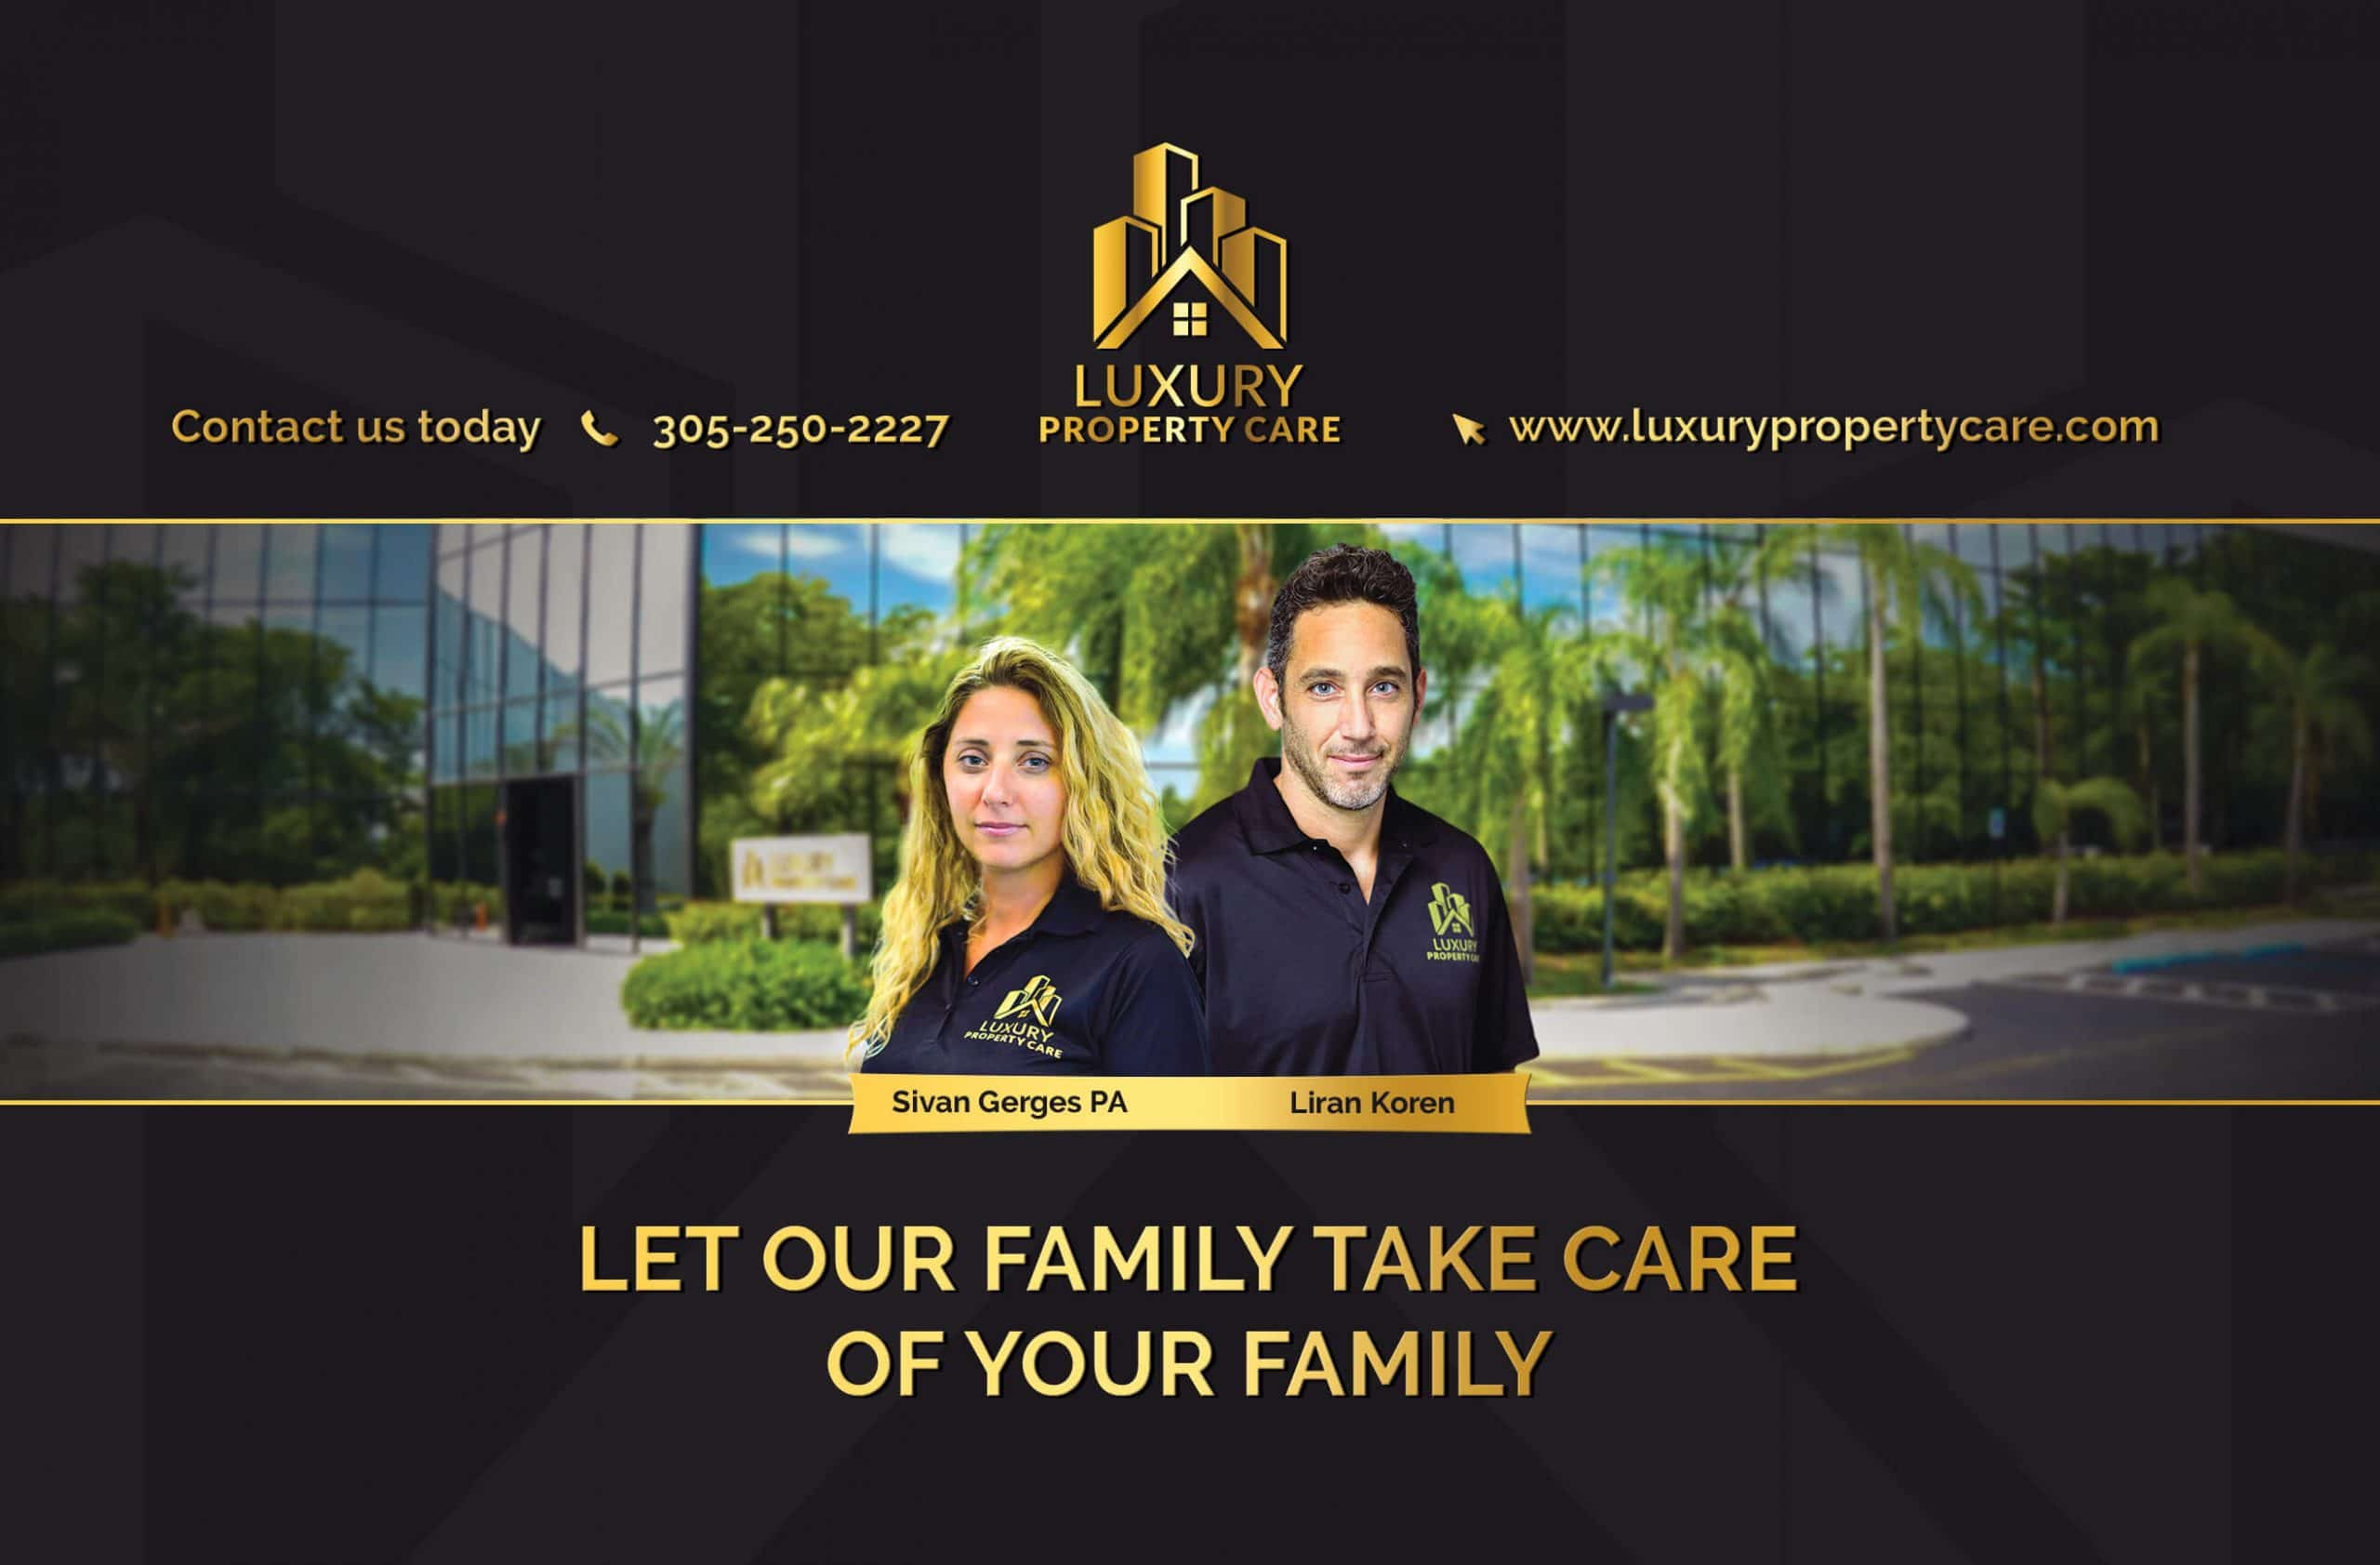 Luxury property care; Your trusted condo management partner